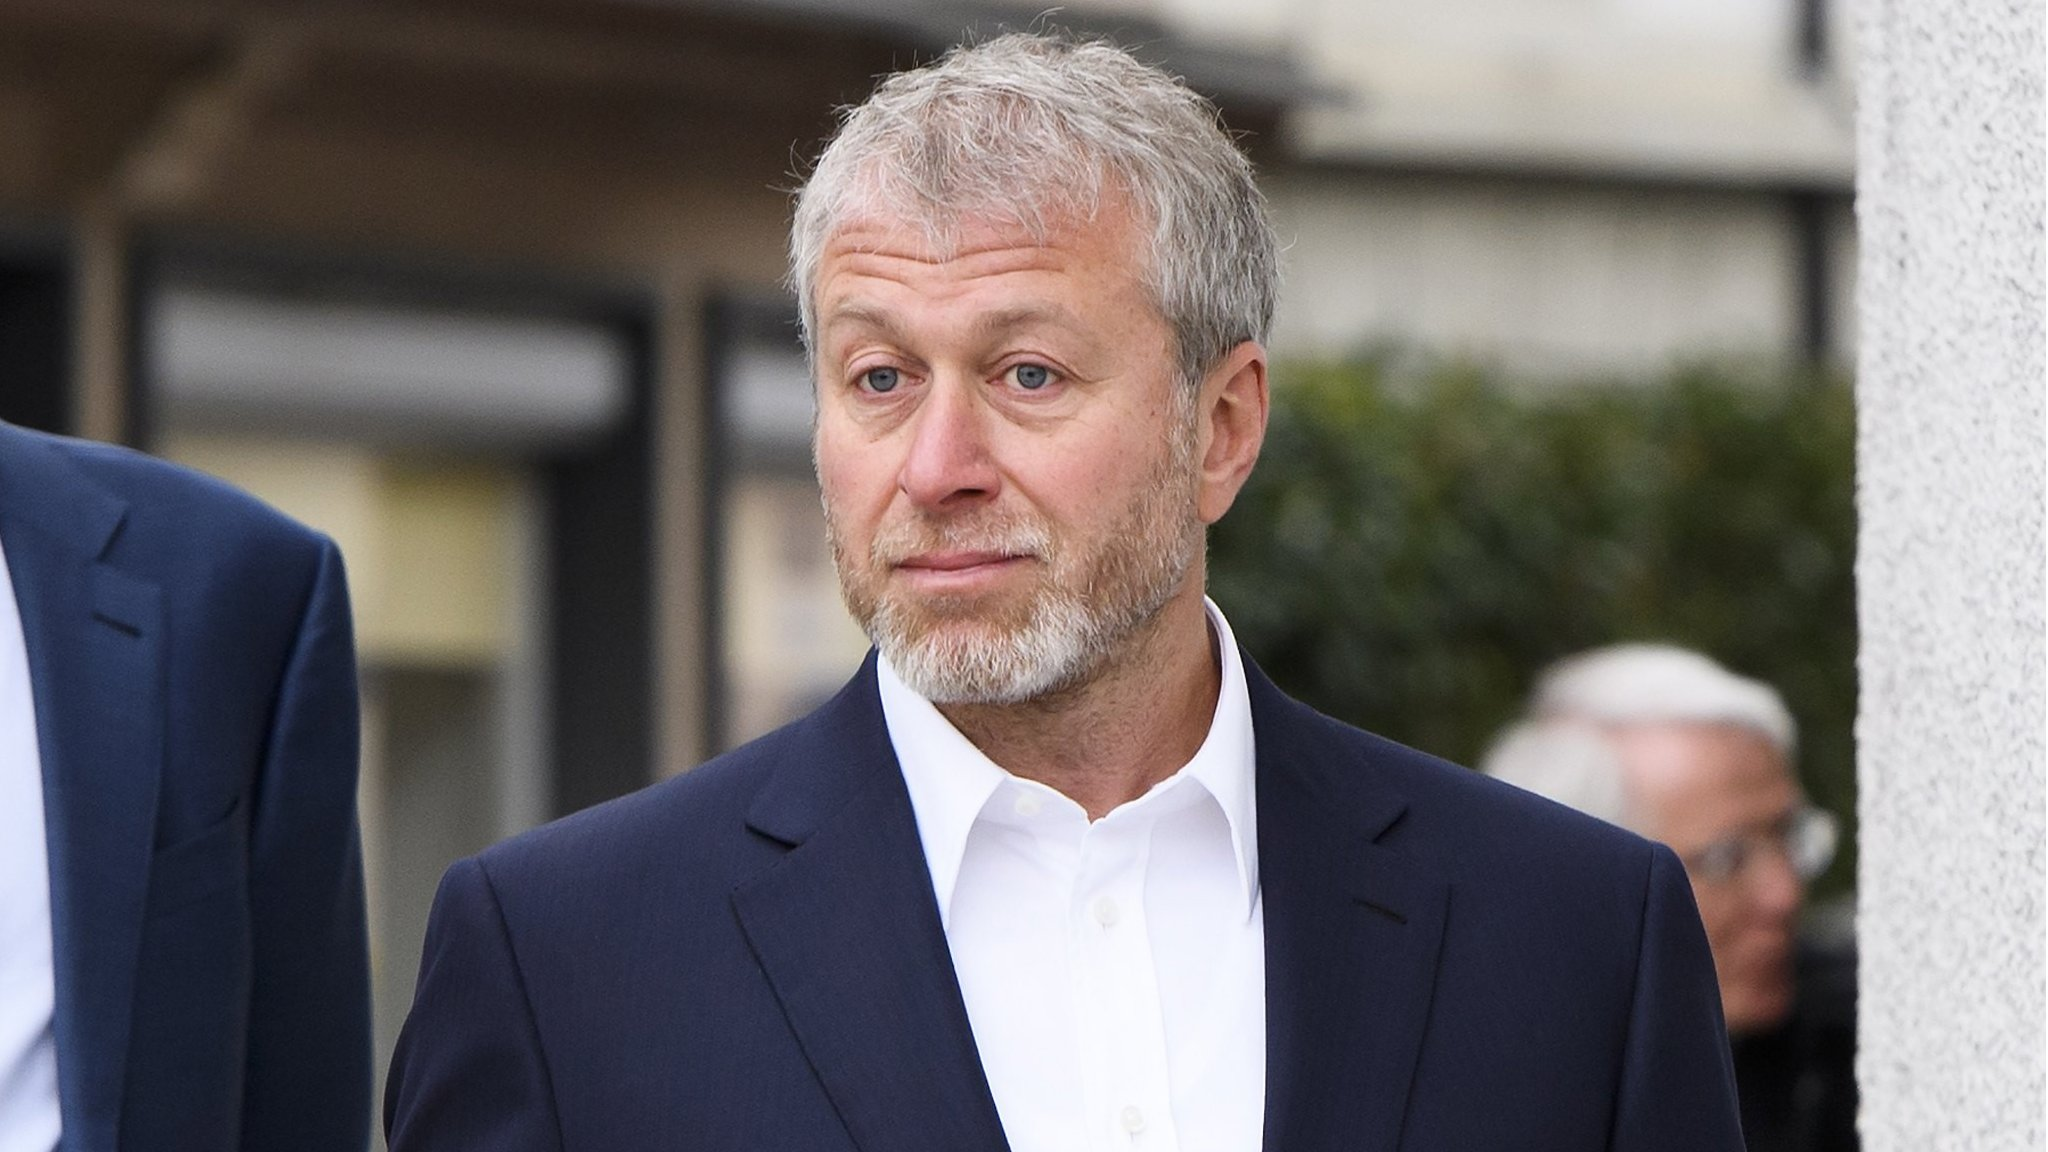 Roman Abramovich was deemed potential 'security threat' by Swiss police